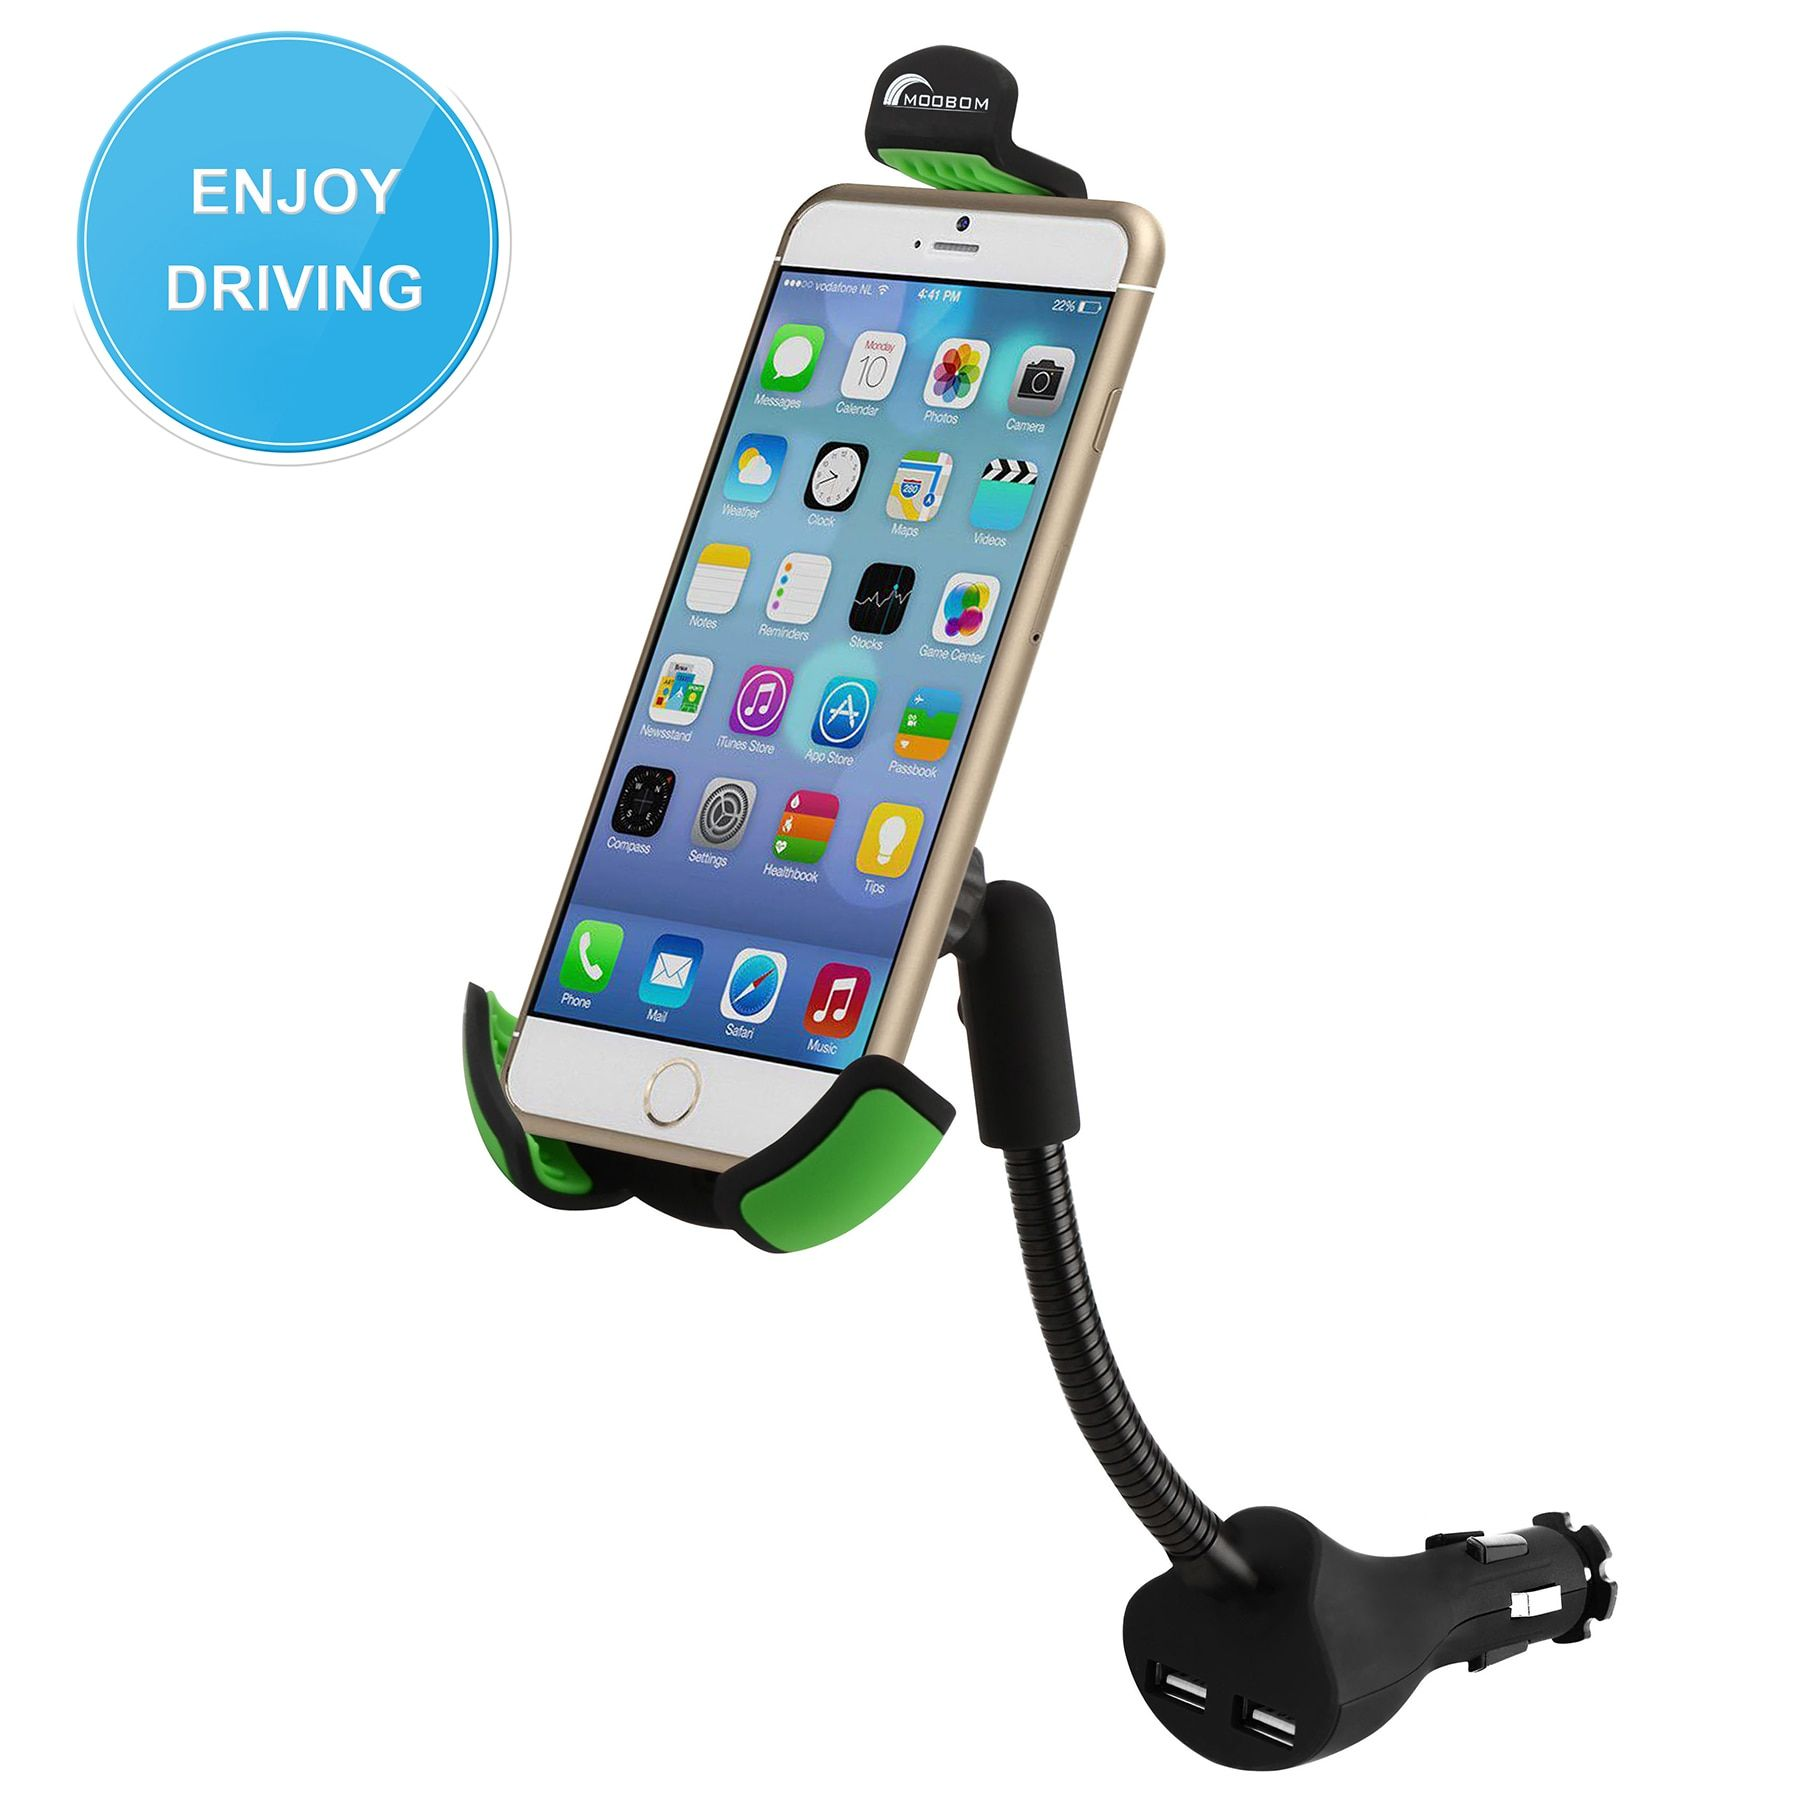 YINKUU HC84K Dual USB 2.1A Over Charger Current Protection S2EG Car Mount  Phone Holder VG001 T10